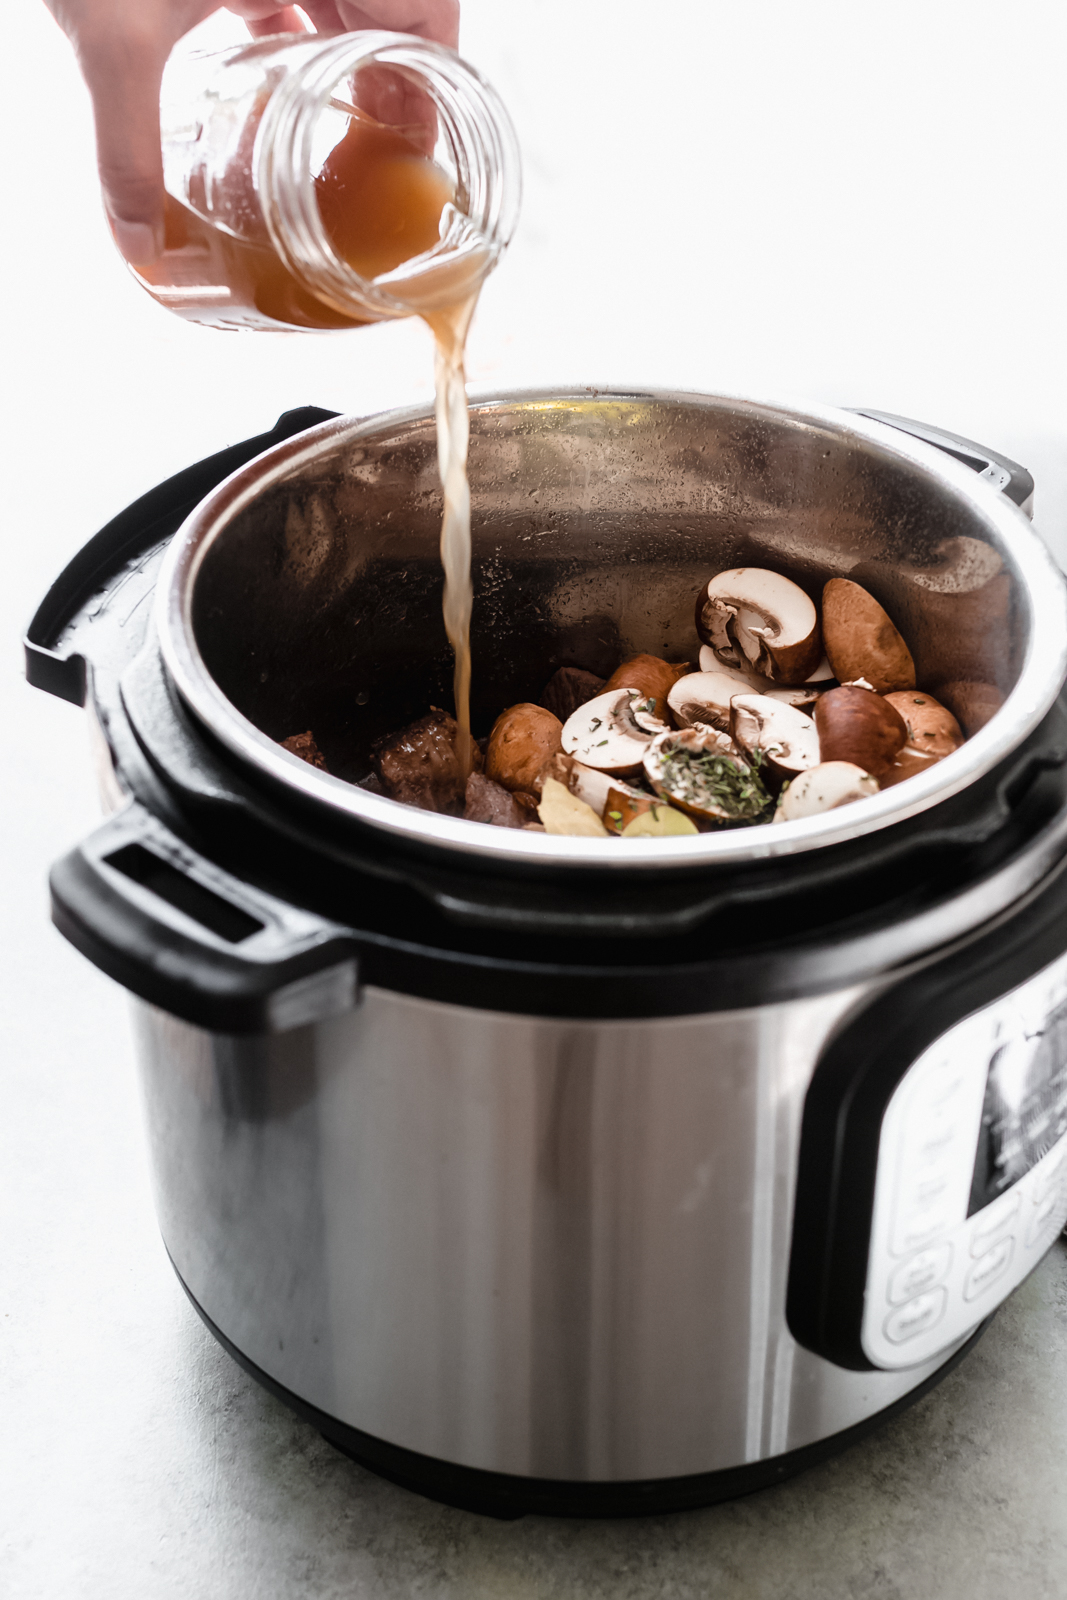 pouring beef stock into the instant pot before pressure cooking the stew